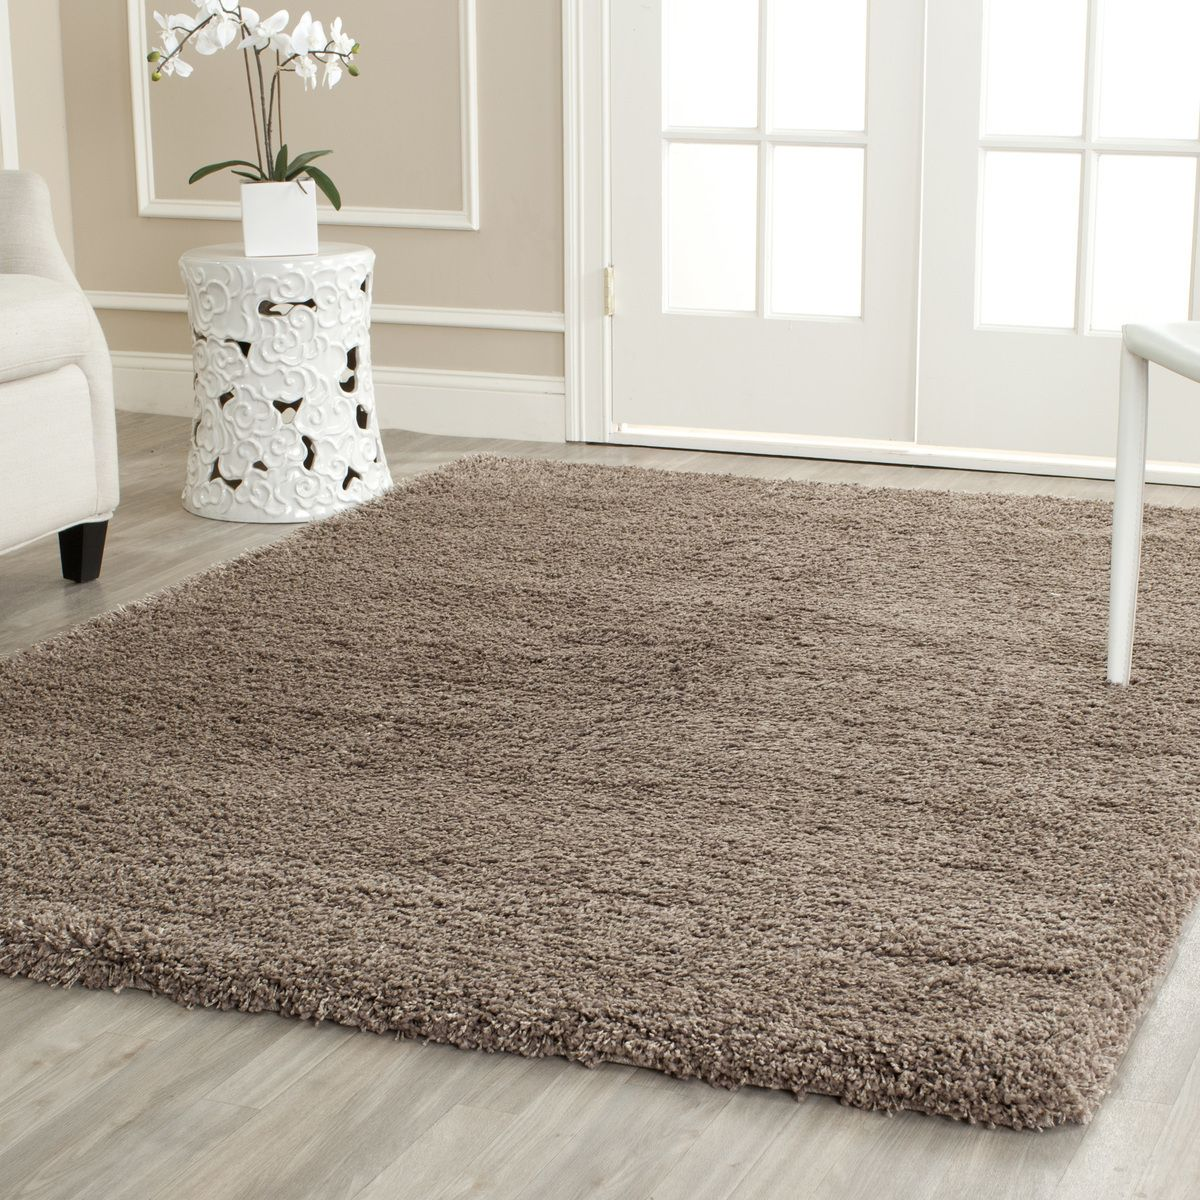 Sg151 2424 Rug Color Taupe Size 8 6 Round In 2020 Taupe